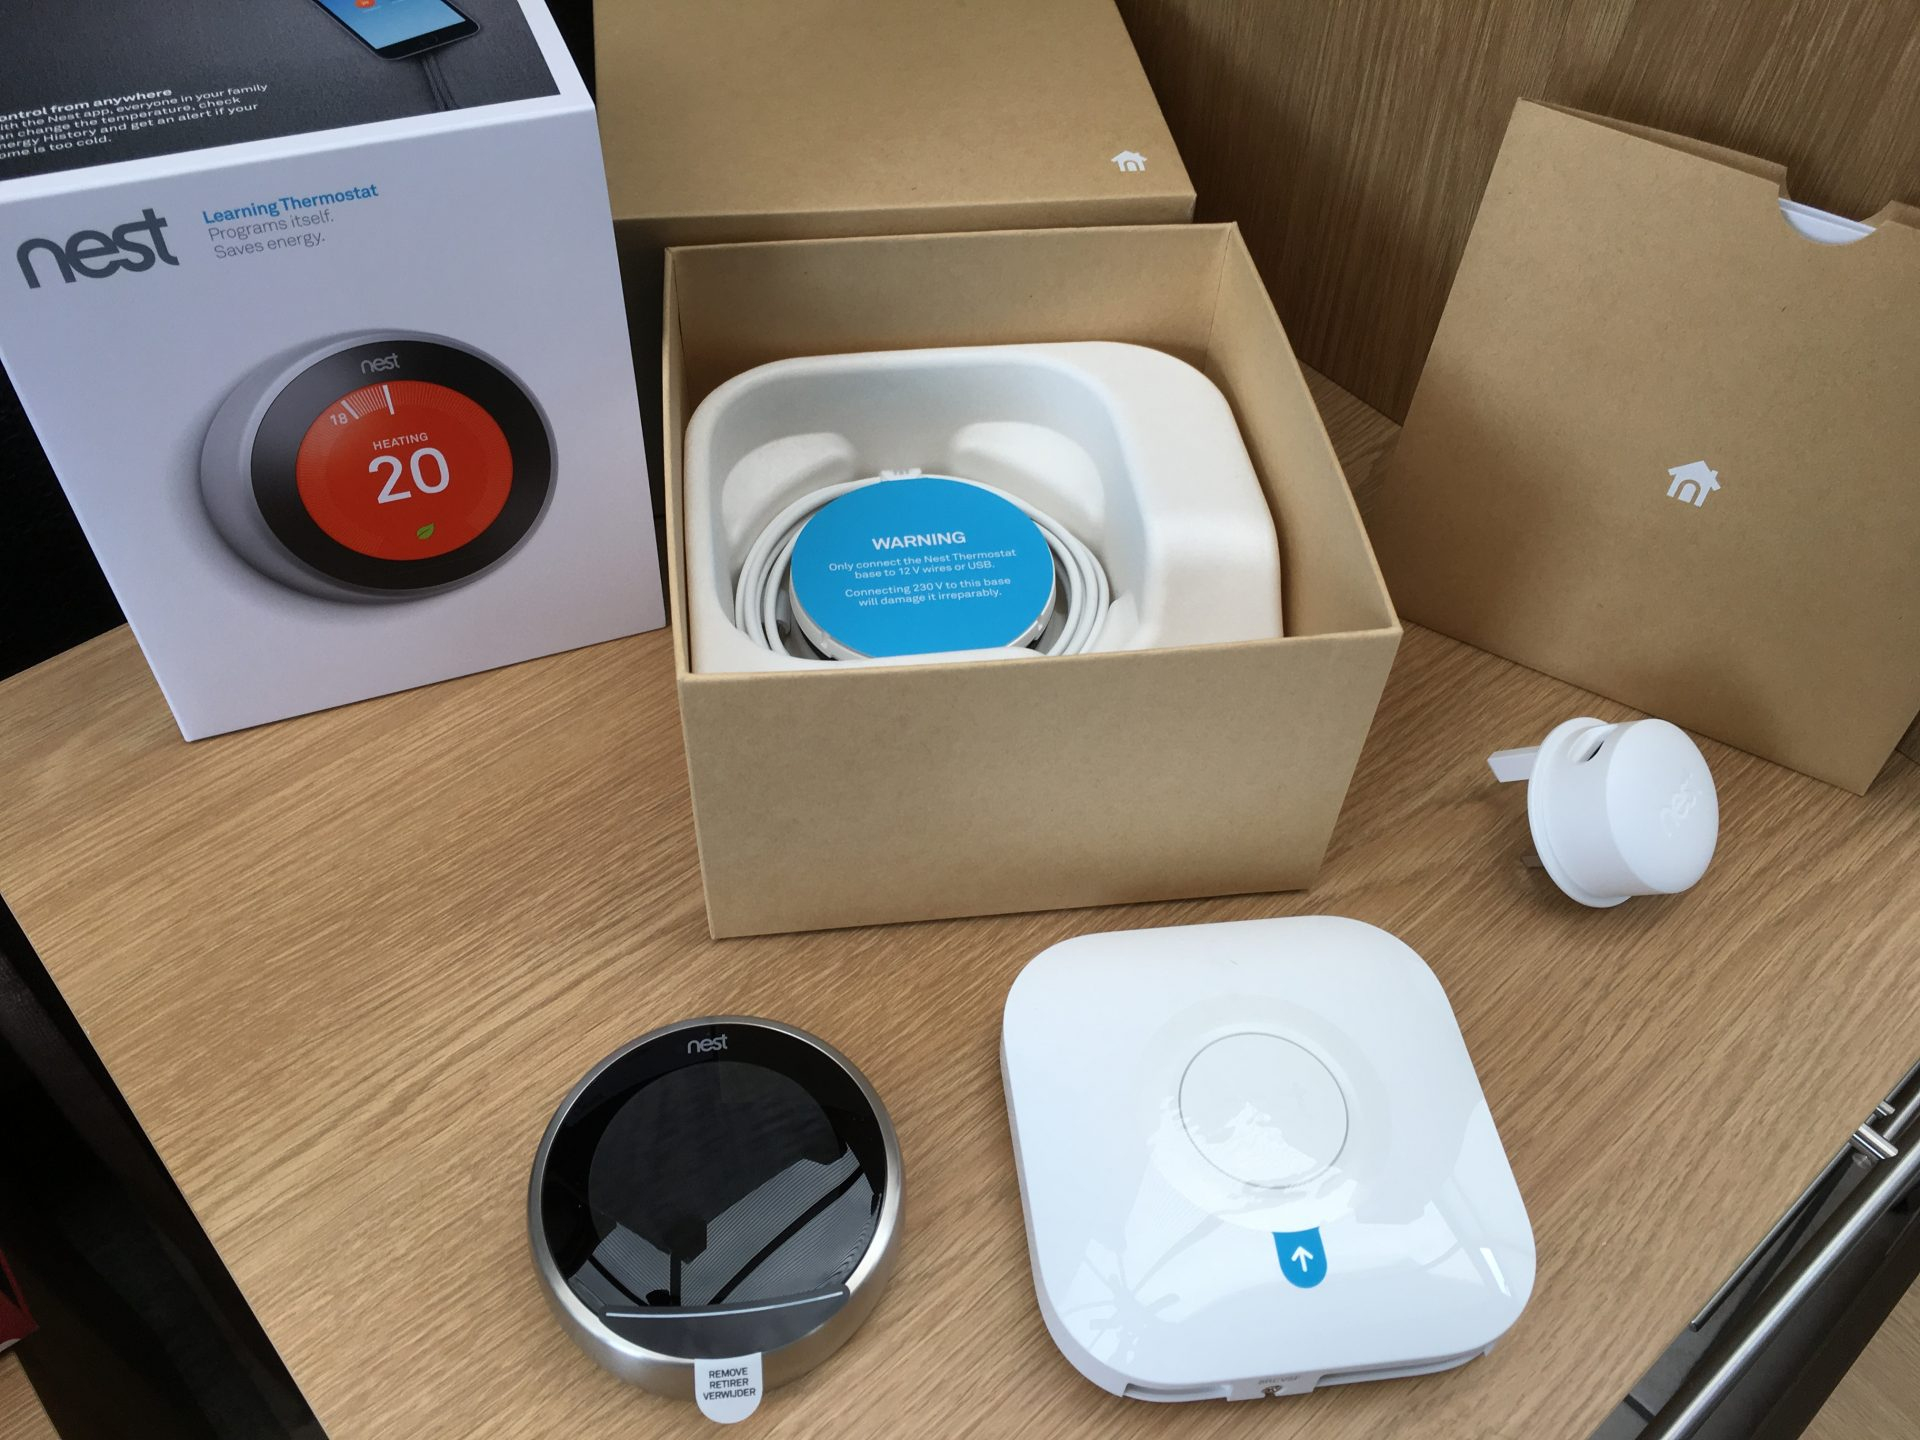 How To Install The Nest Learning Thermostat (3Rd Gen) In A Y-Plan - Nest Thermostat Wiring Diagram Uk